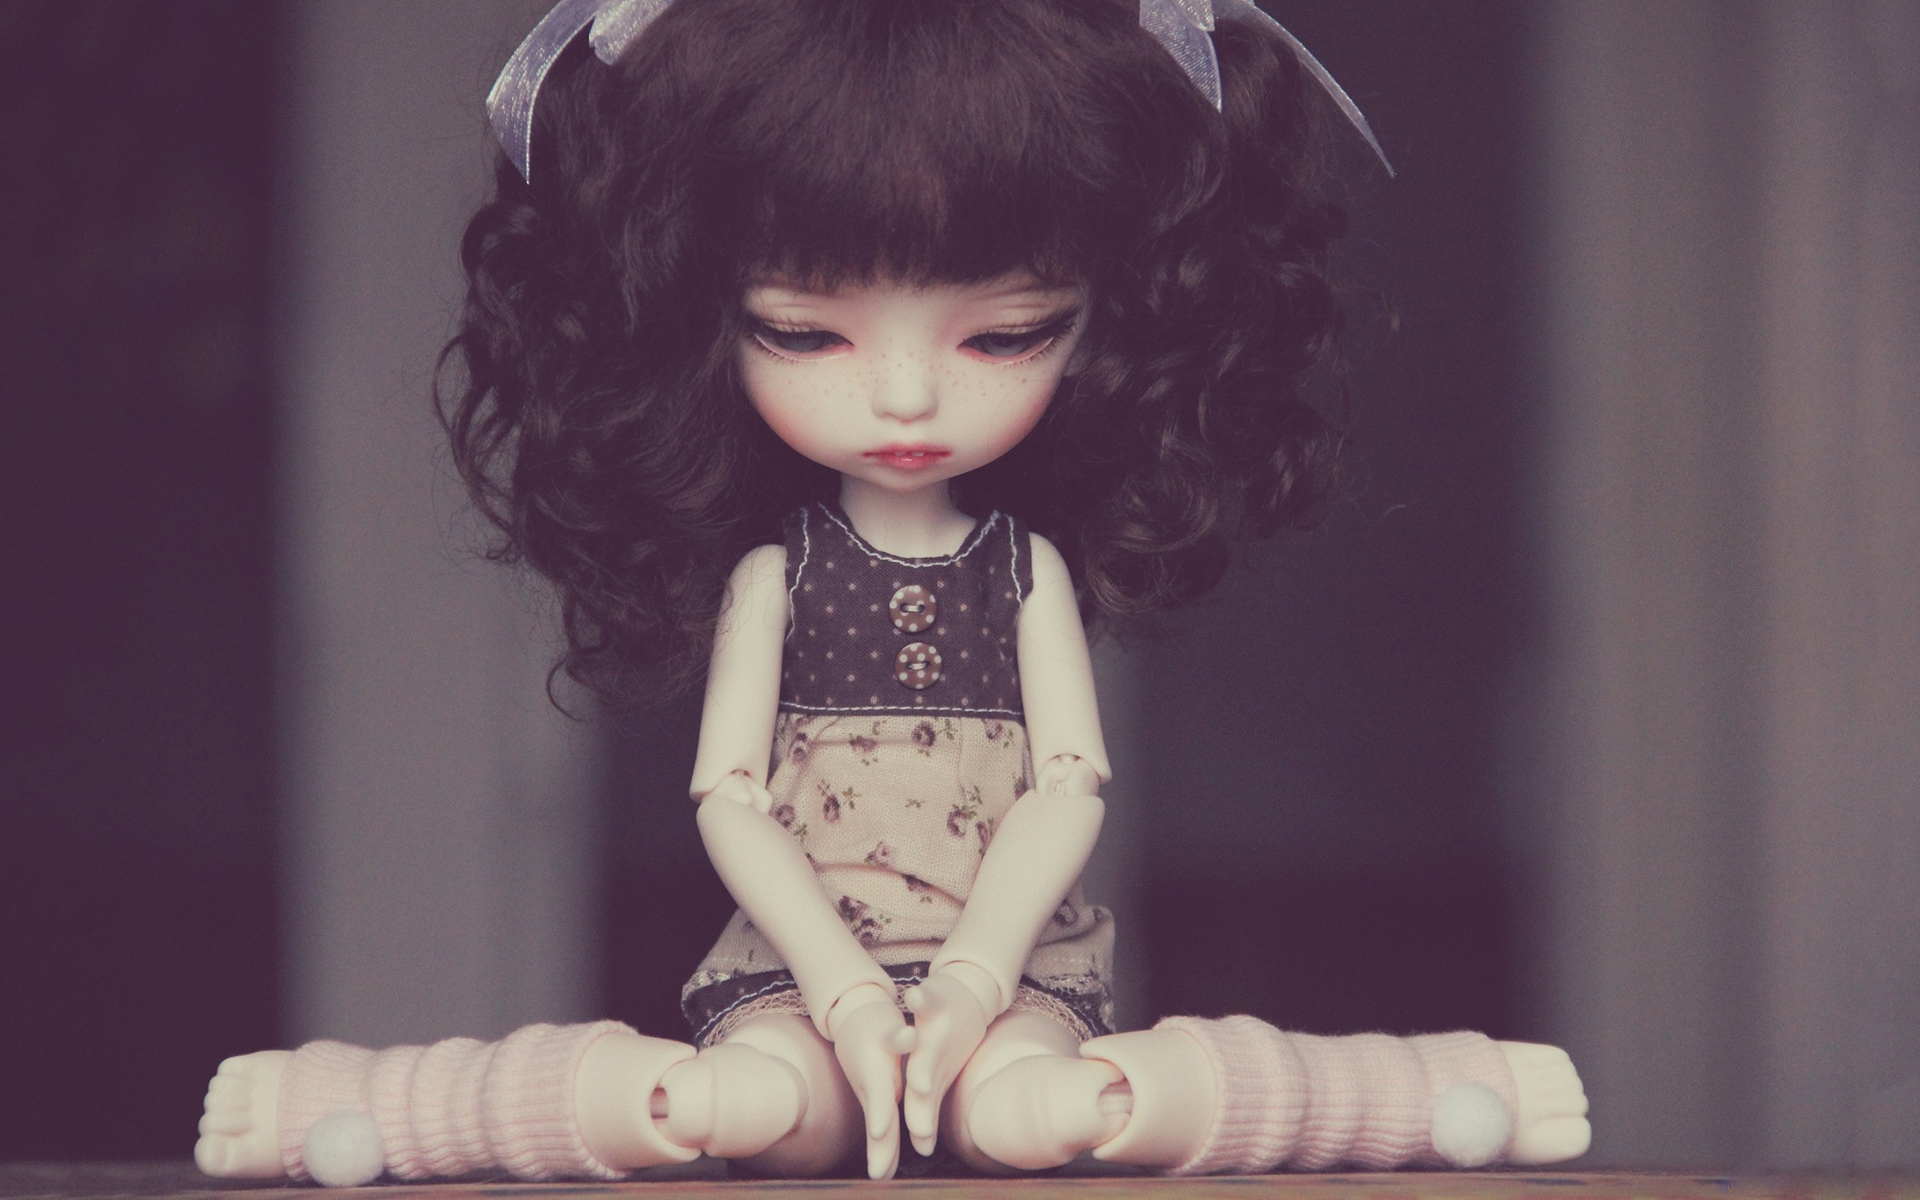 Sad doll sitting